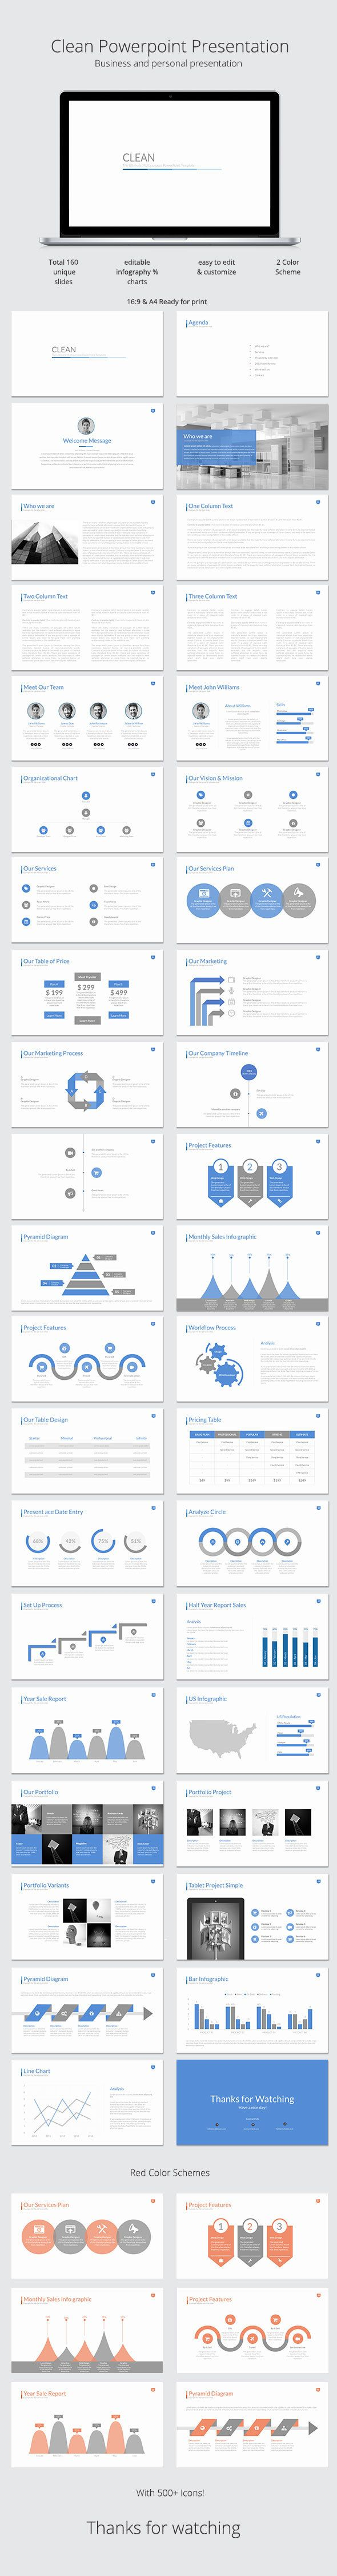 Coolmathgamesus  Stunning  Ideas About Powerpoint Presentations On Pinterest With Exciting Clean Powerpoint Template With Delectable Topic Sentence Powerpoint Also Powerpoint Slide Clicker In Addition Create Timeline Powerpoint And Pollution Powerpoint As Well As World Map Powerpoint Template Additionally Downloading Powerpoint From Pinterestcom With Coolmathgamesus  Exciting  Ideas About Powerpoint Presentations On Pinterest With Delectable Clean Powerpoint Template And Stunning Topic Sentence Powerpoint Also Powerpoint Slide Clicker In Addition Create Timeline Powerpoint From Pinterestcom